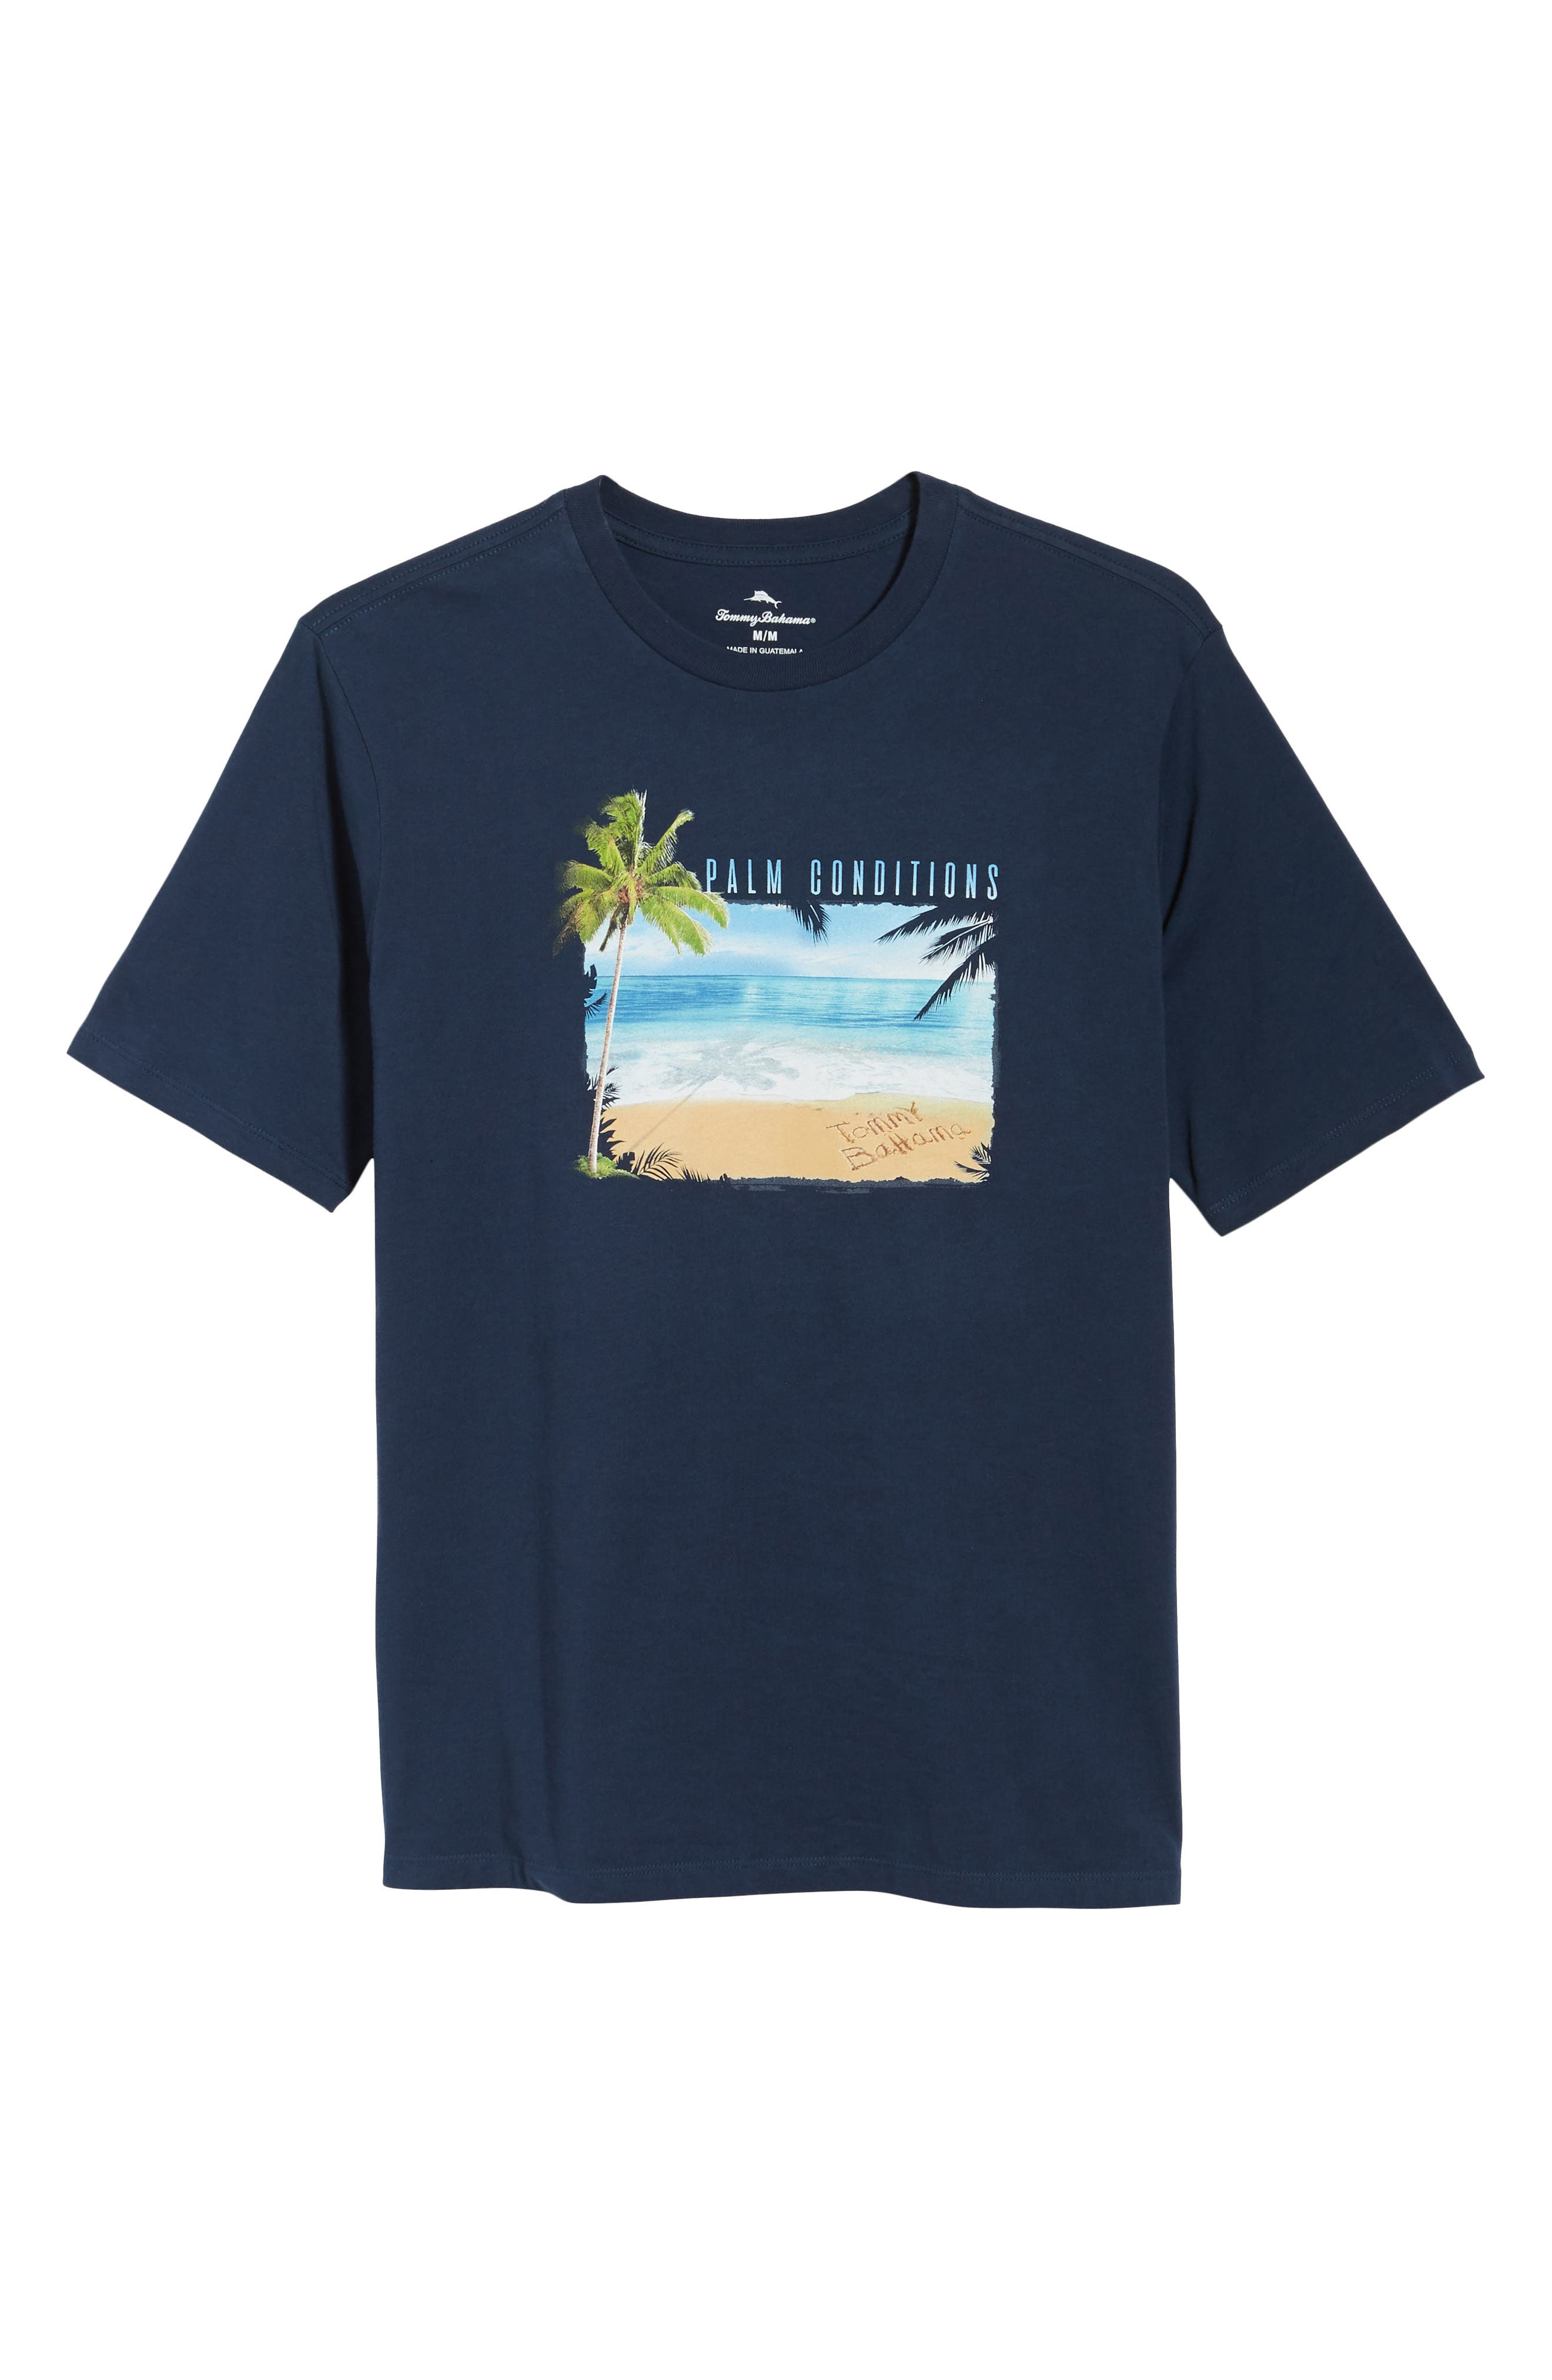 Palm Conditions T-Shirt,                             Alternate thumbnail 6, color,                             NAVY